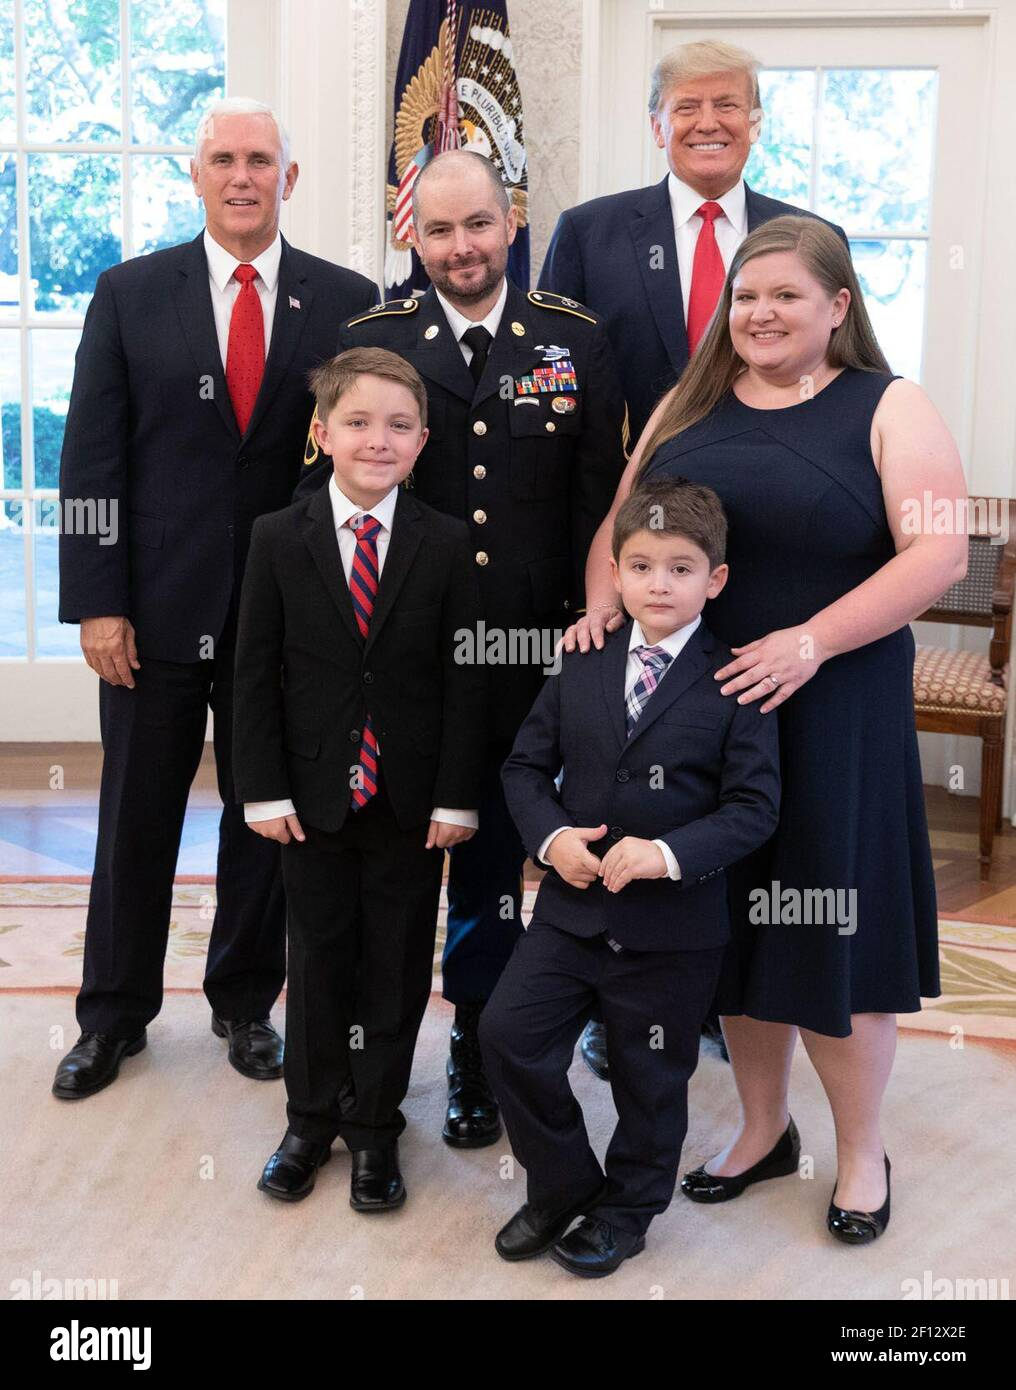 President Donald Trump and Vice President Mike Pence pose for a photo with Medal of Honor recipient retired U.S. Army Staff Sgt. Ronald J. Shurer II his wife Miranda and sons Monday Oct. 1 2018 in the Oval Office Stock Photo